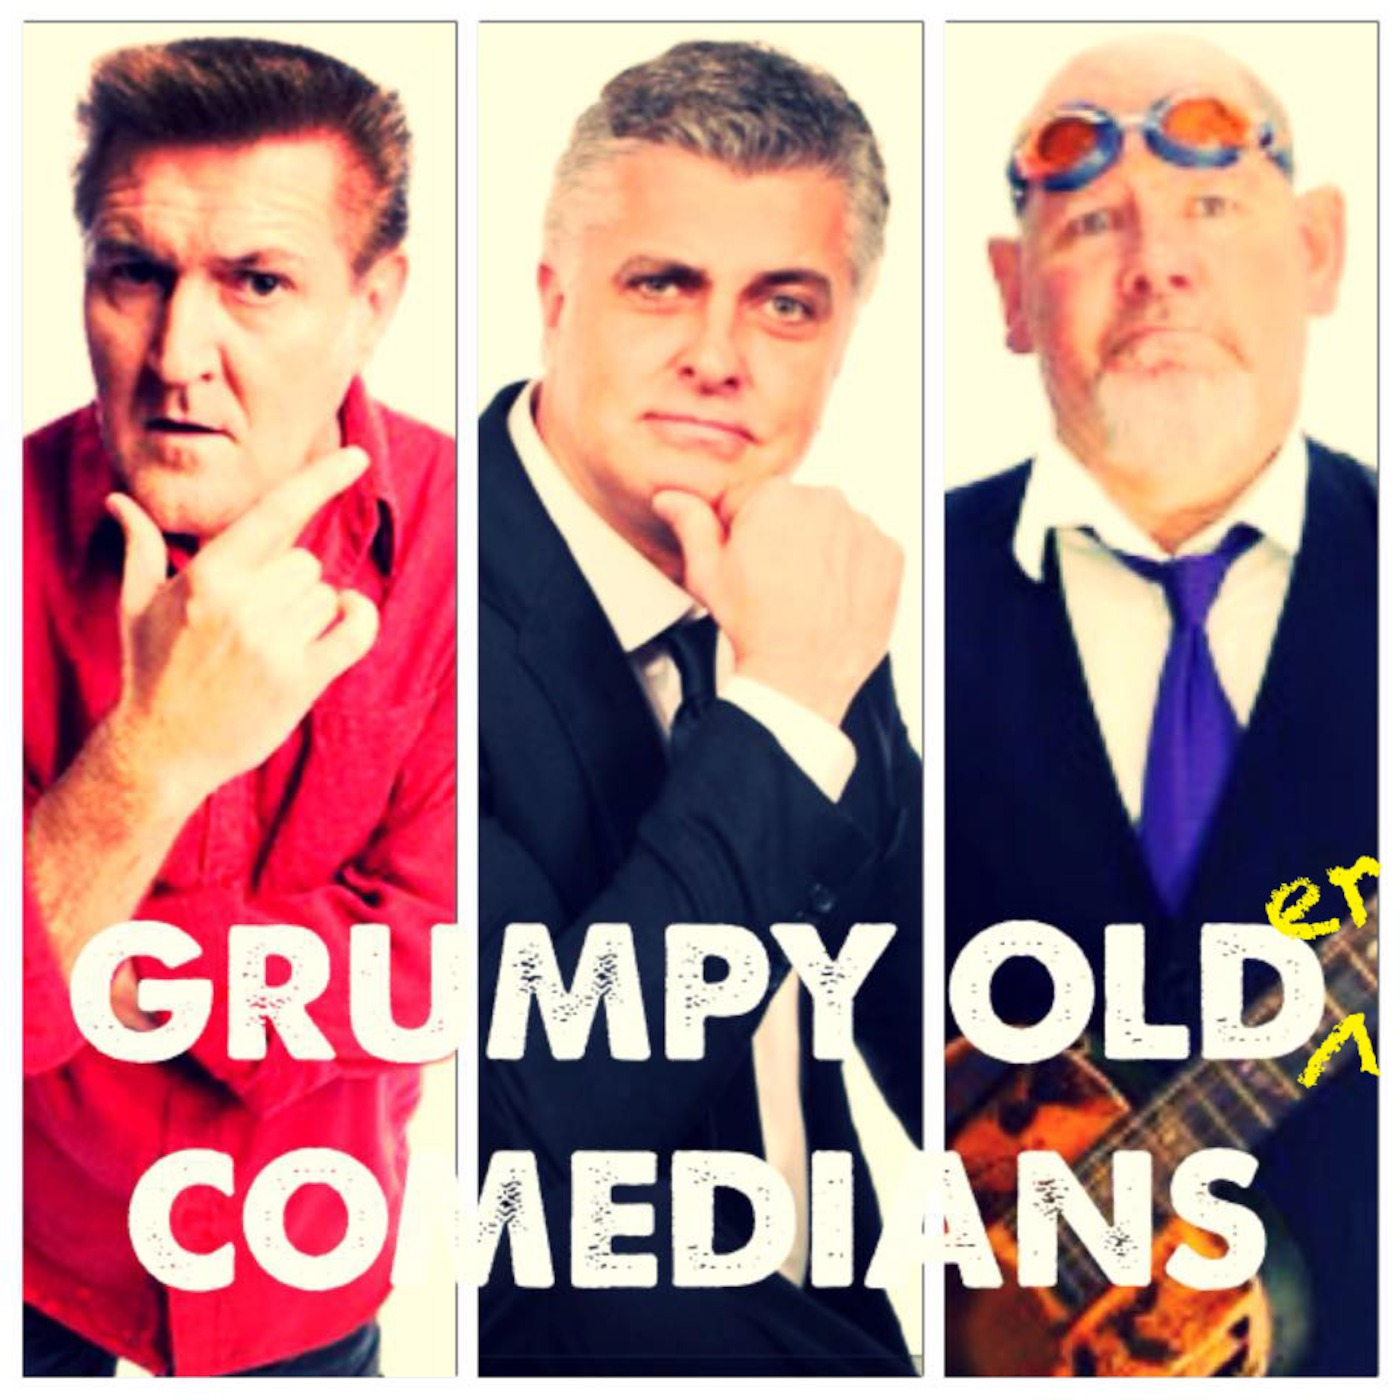 Grumpy Old Comedians